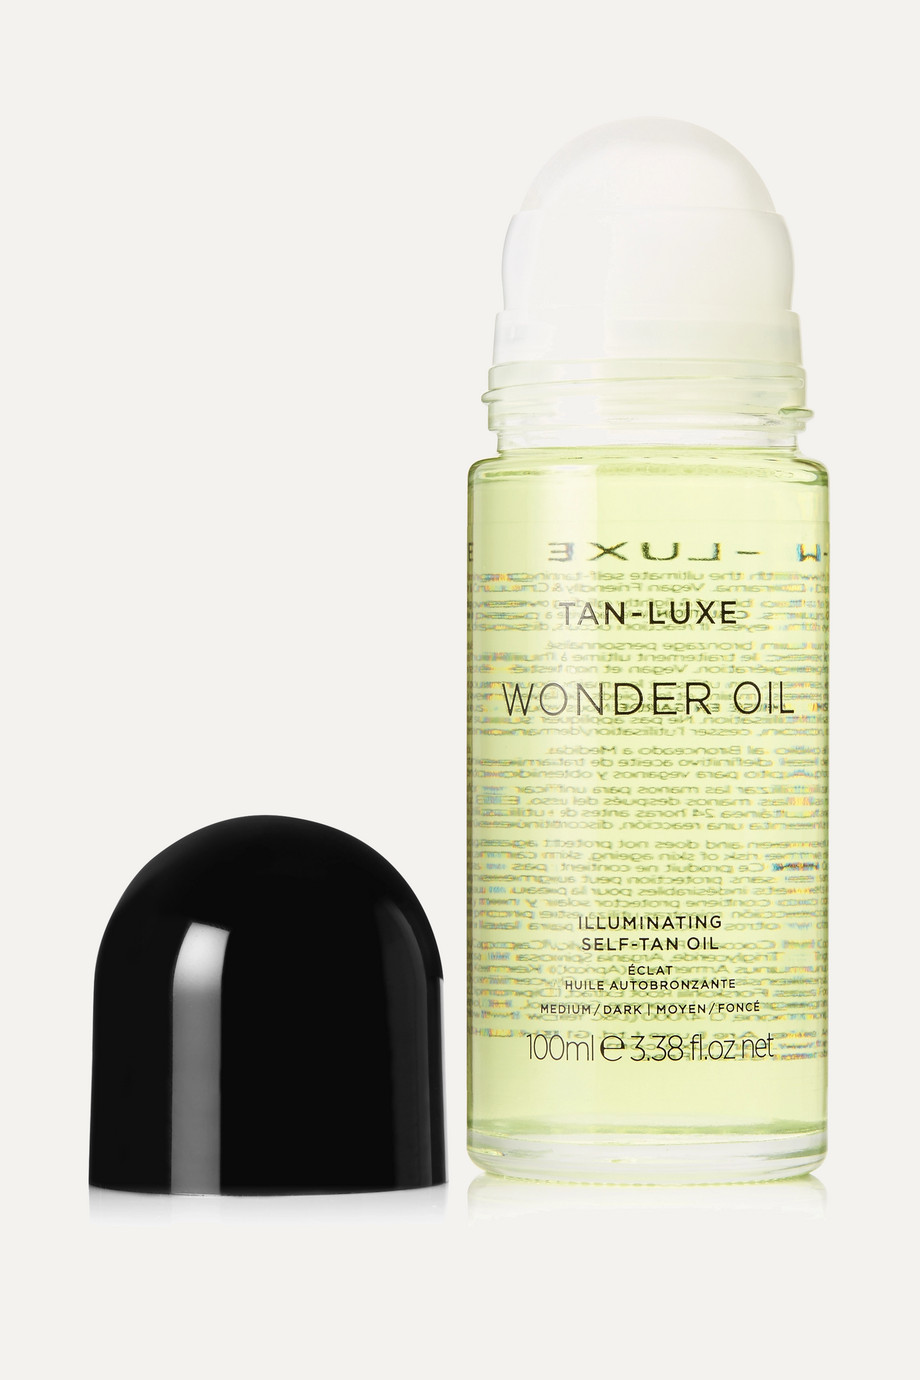 TAN-LUXE WONDER OIL Medium/Dark, 100ml